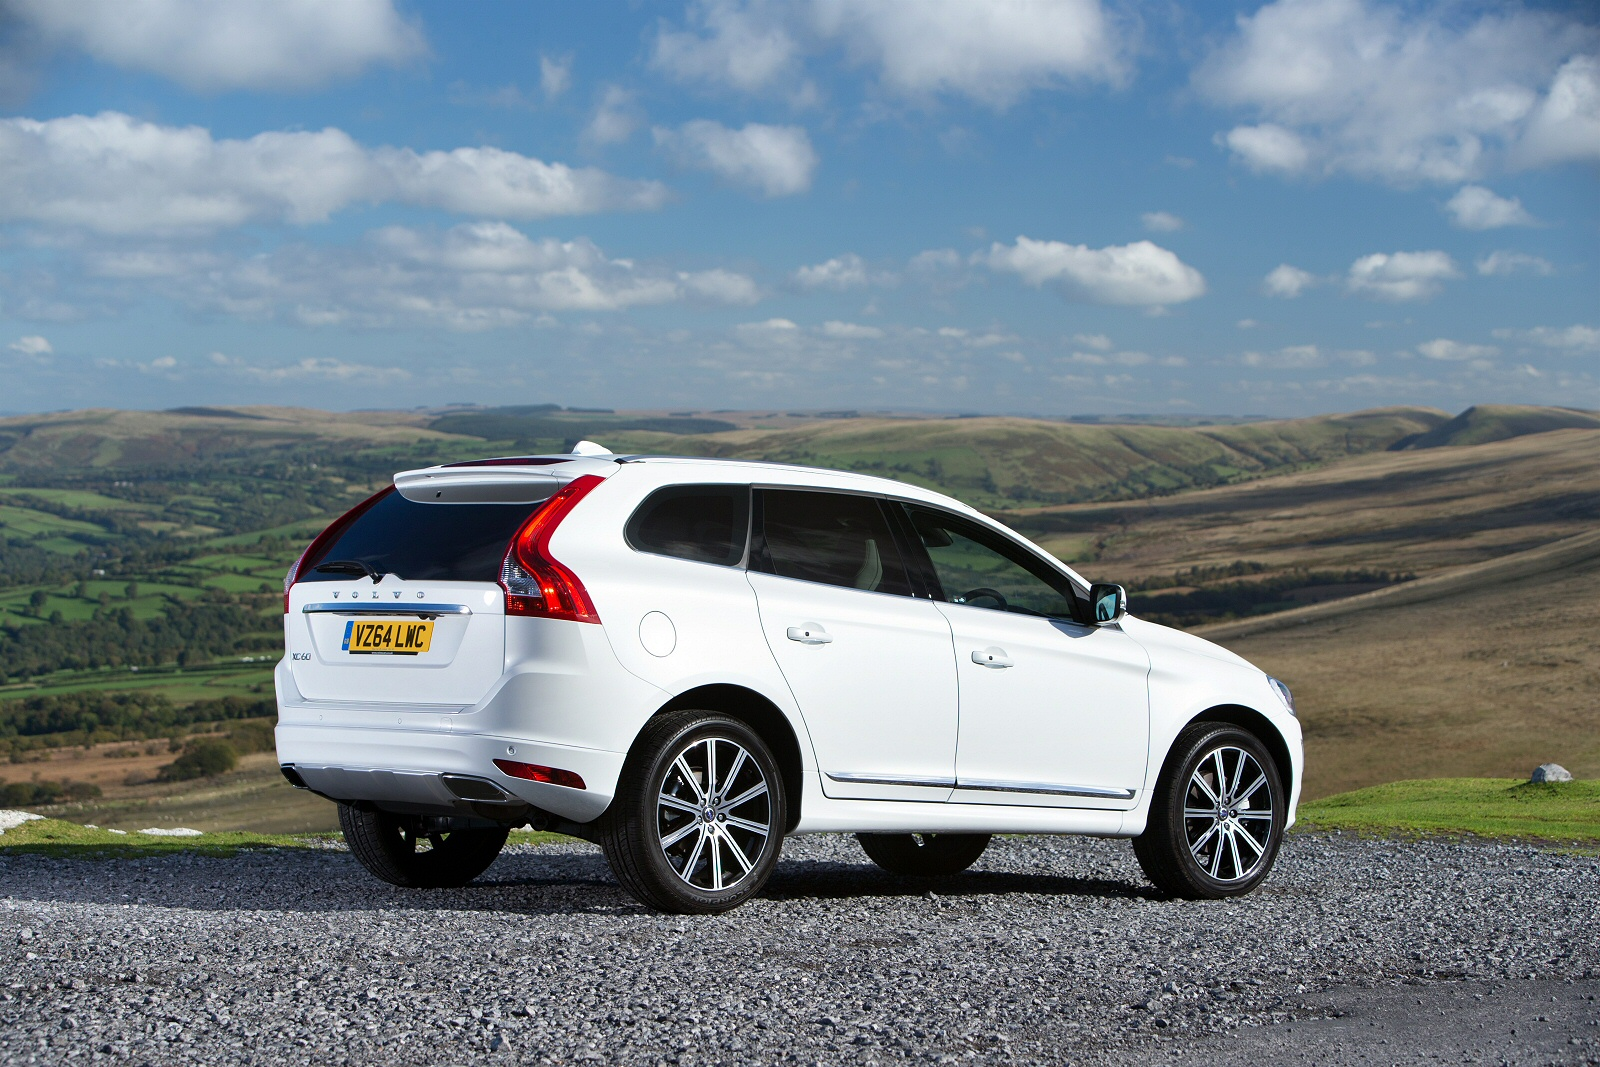 new volvo xc60 2 0 d4 momentum 5dr awd geartronic diesel estate for sale bristol street. Black Bedroom Furniture Sets. Home Design Ideas